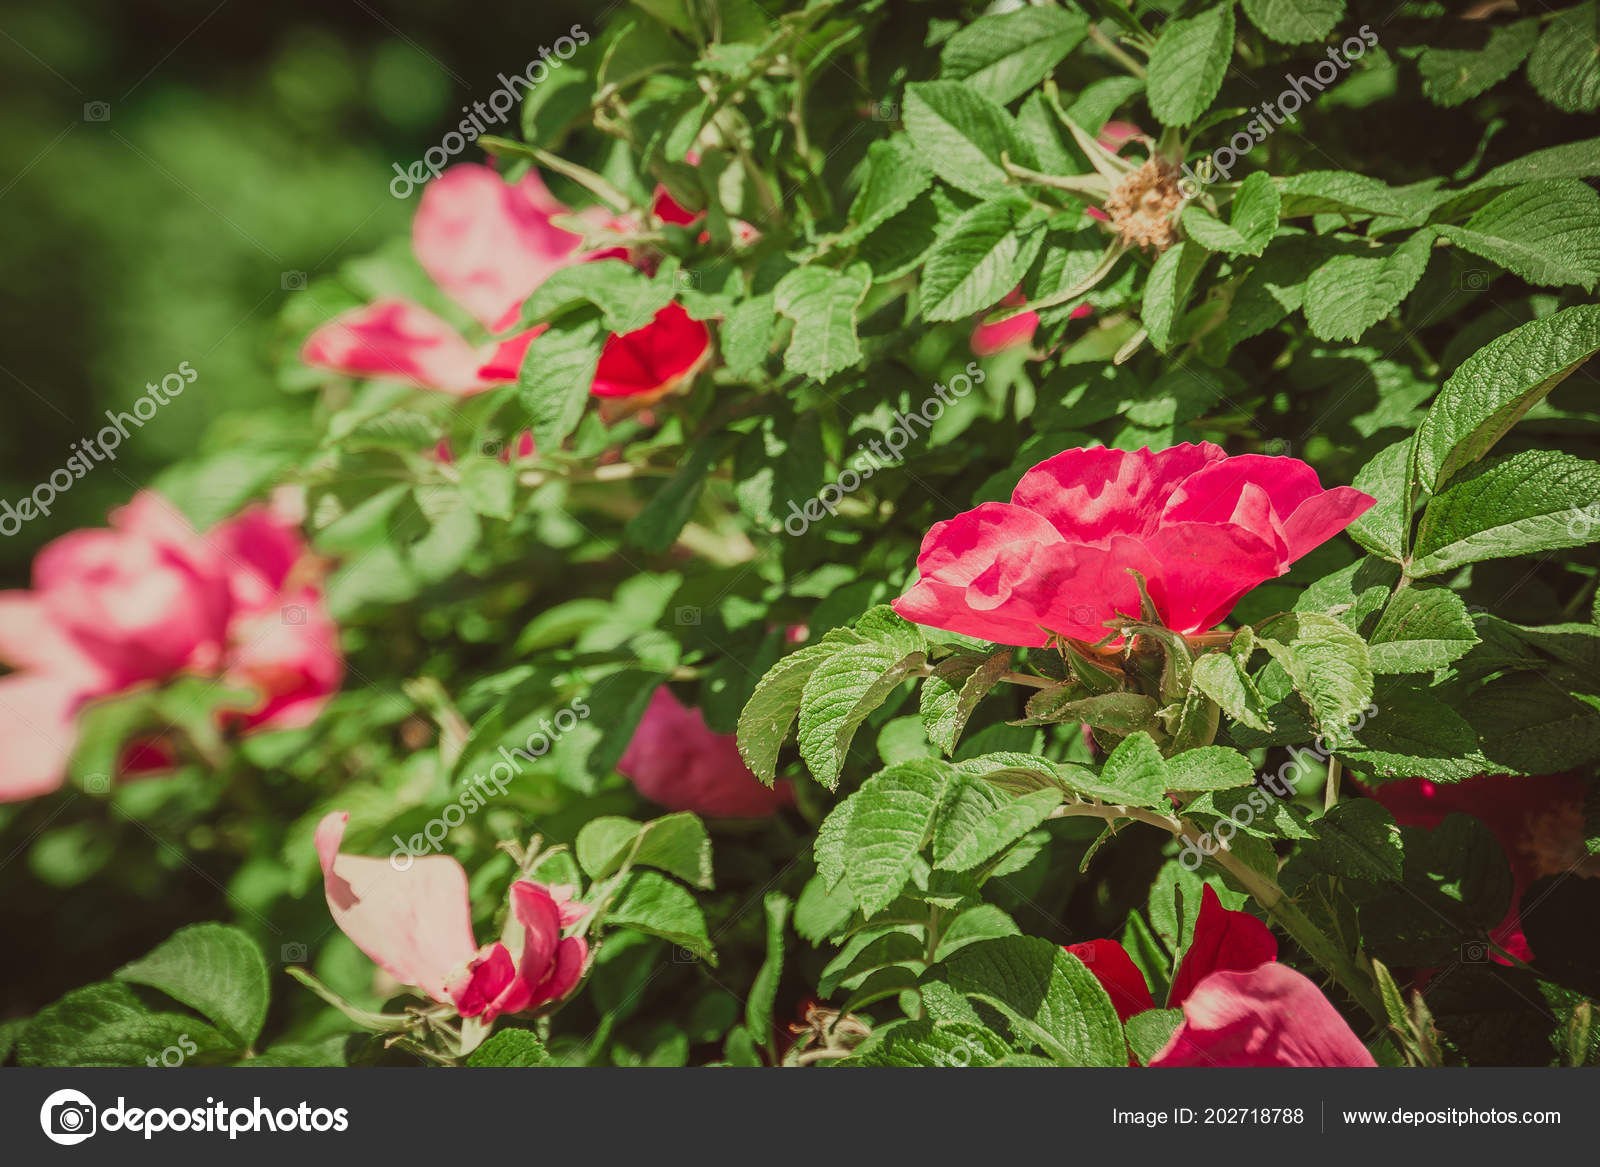 Blooming Briar Flowers Bright Pink Color Bushes Filtered Stock